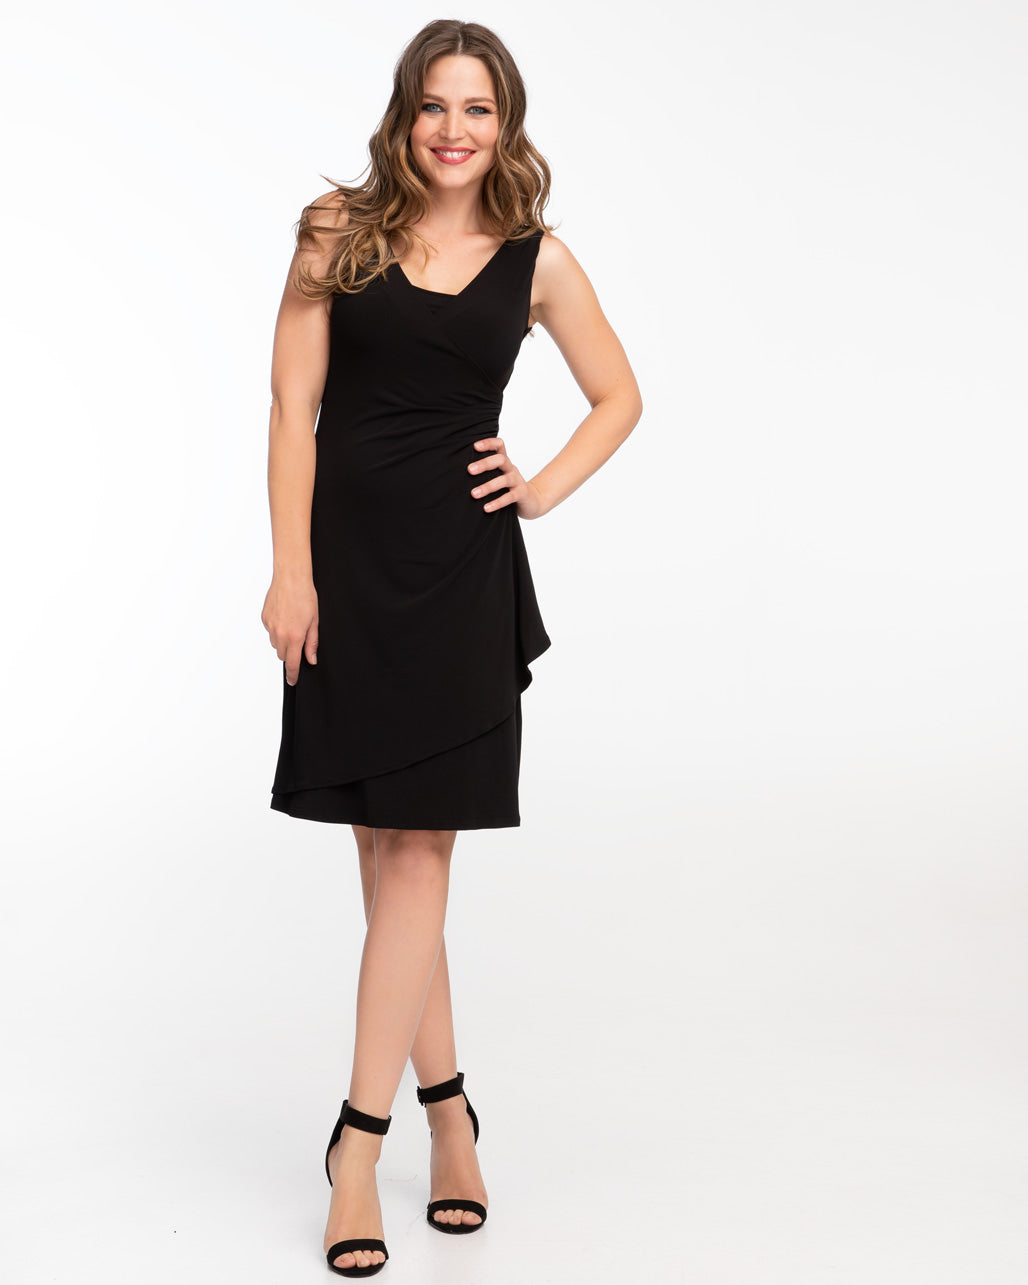 Black gathered wrap nursing dress by Peachymama - Denisa 1